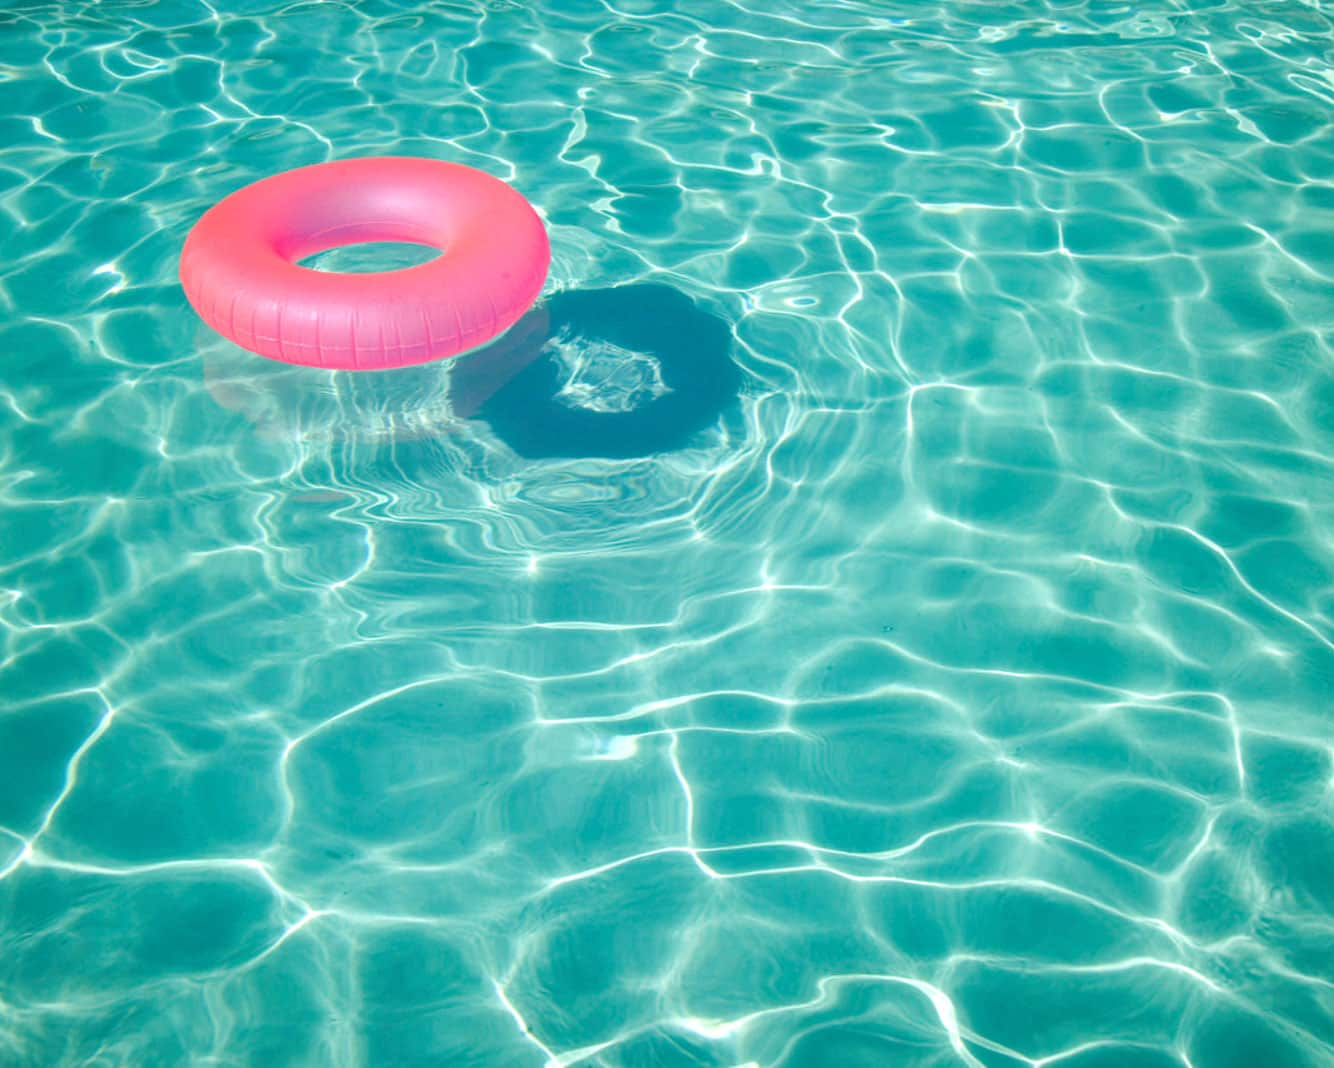 Pink inflatable tube floating in a pool